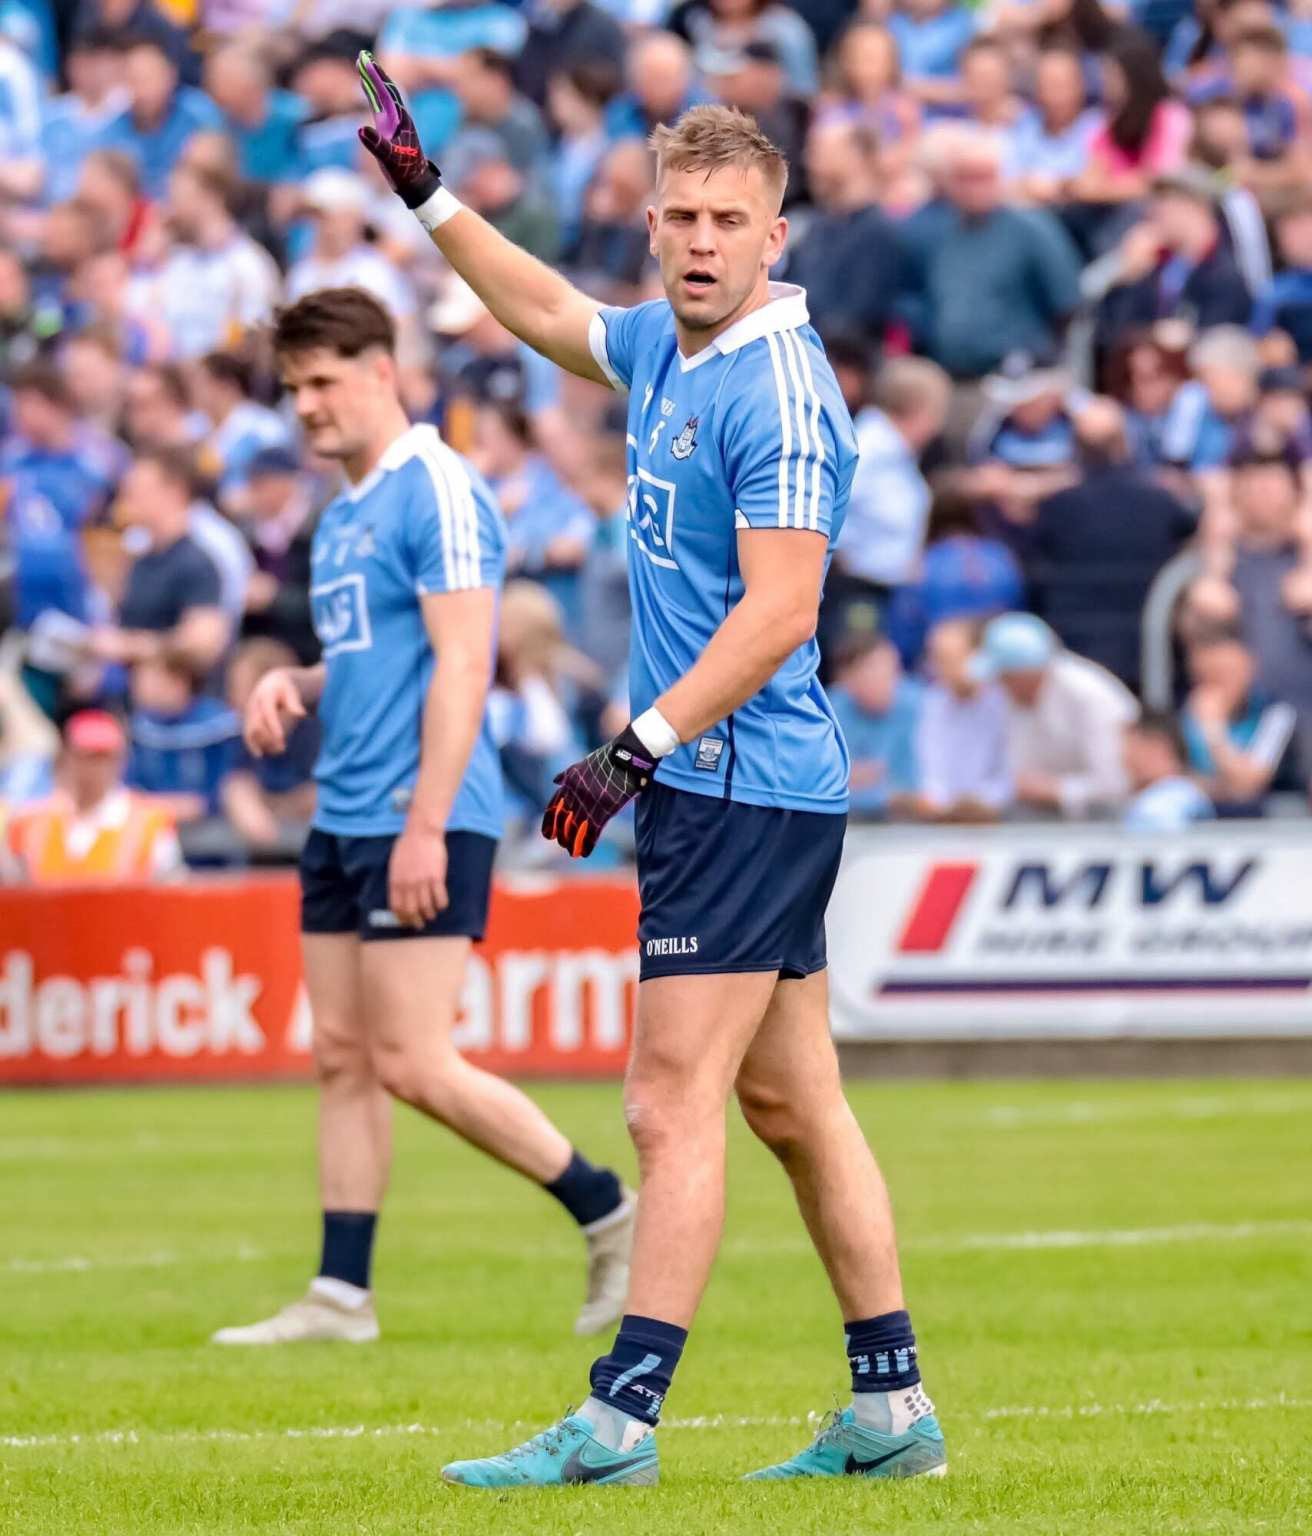 Dublin footballer Jonny Cooper in a Sky Blue Jersey and navy shorts with his hand raised in the air